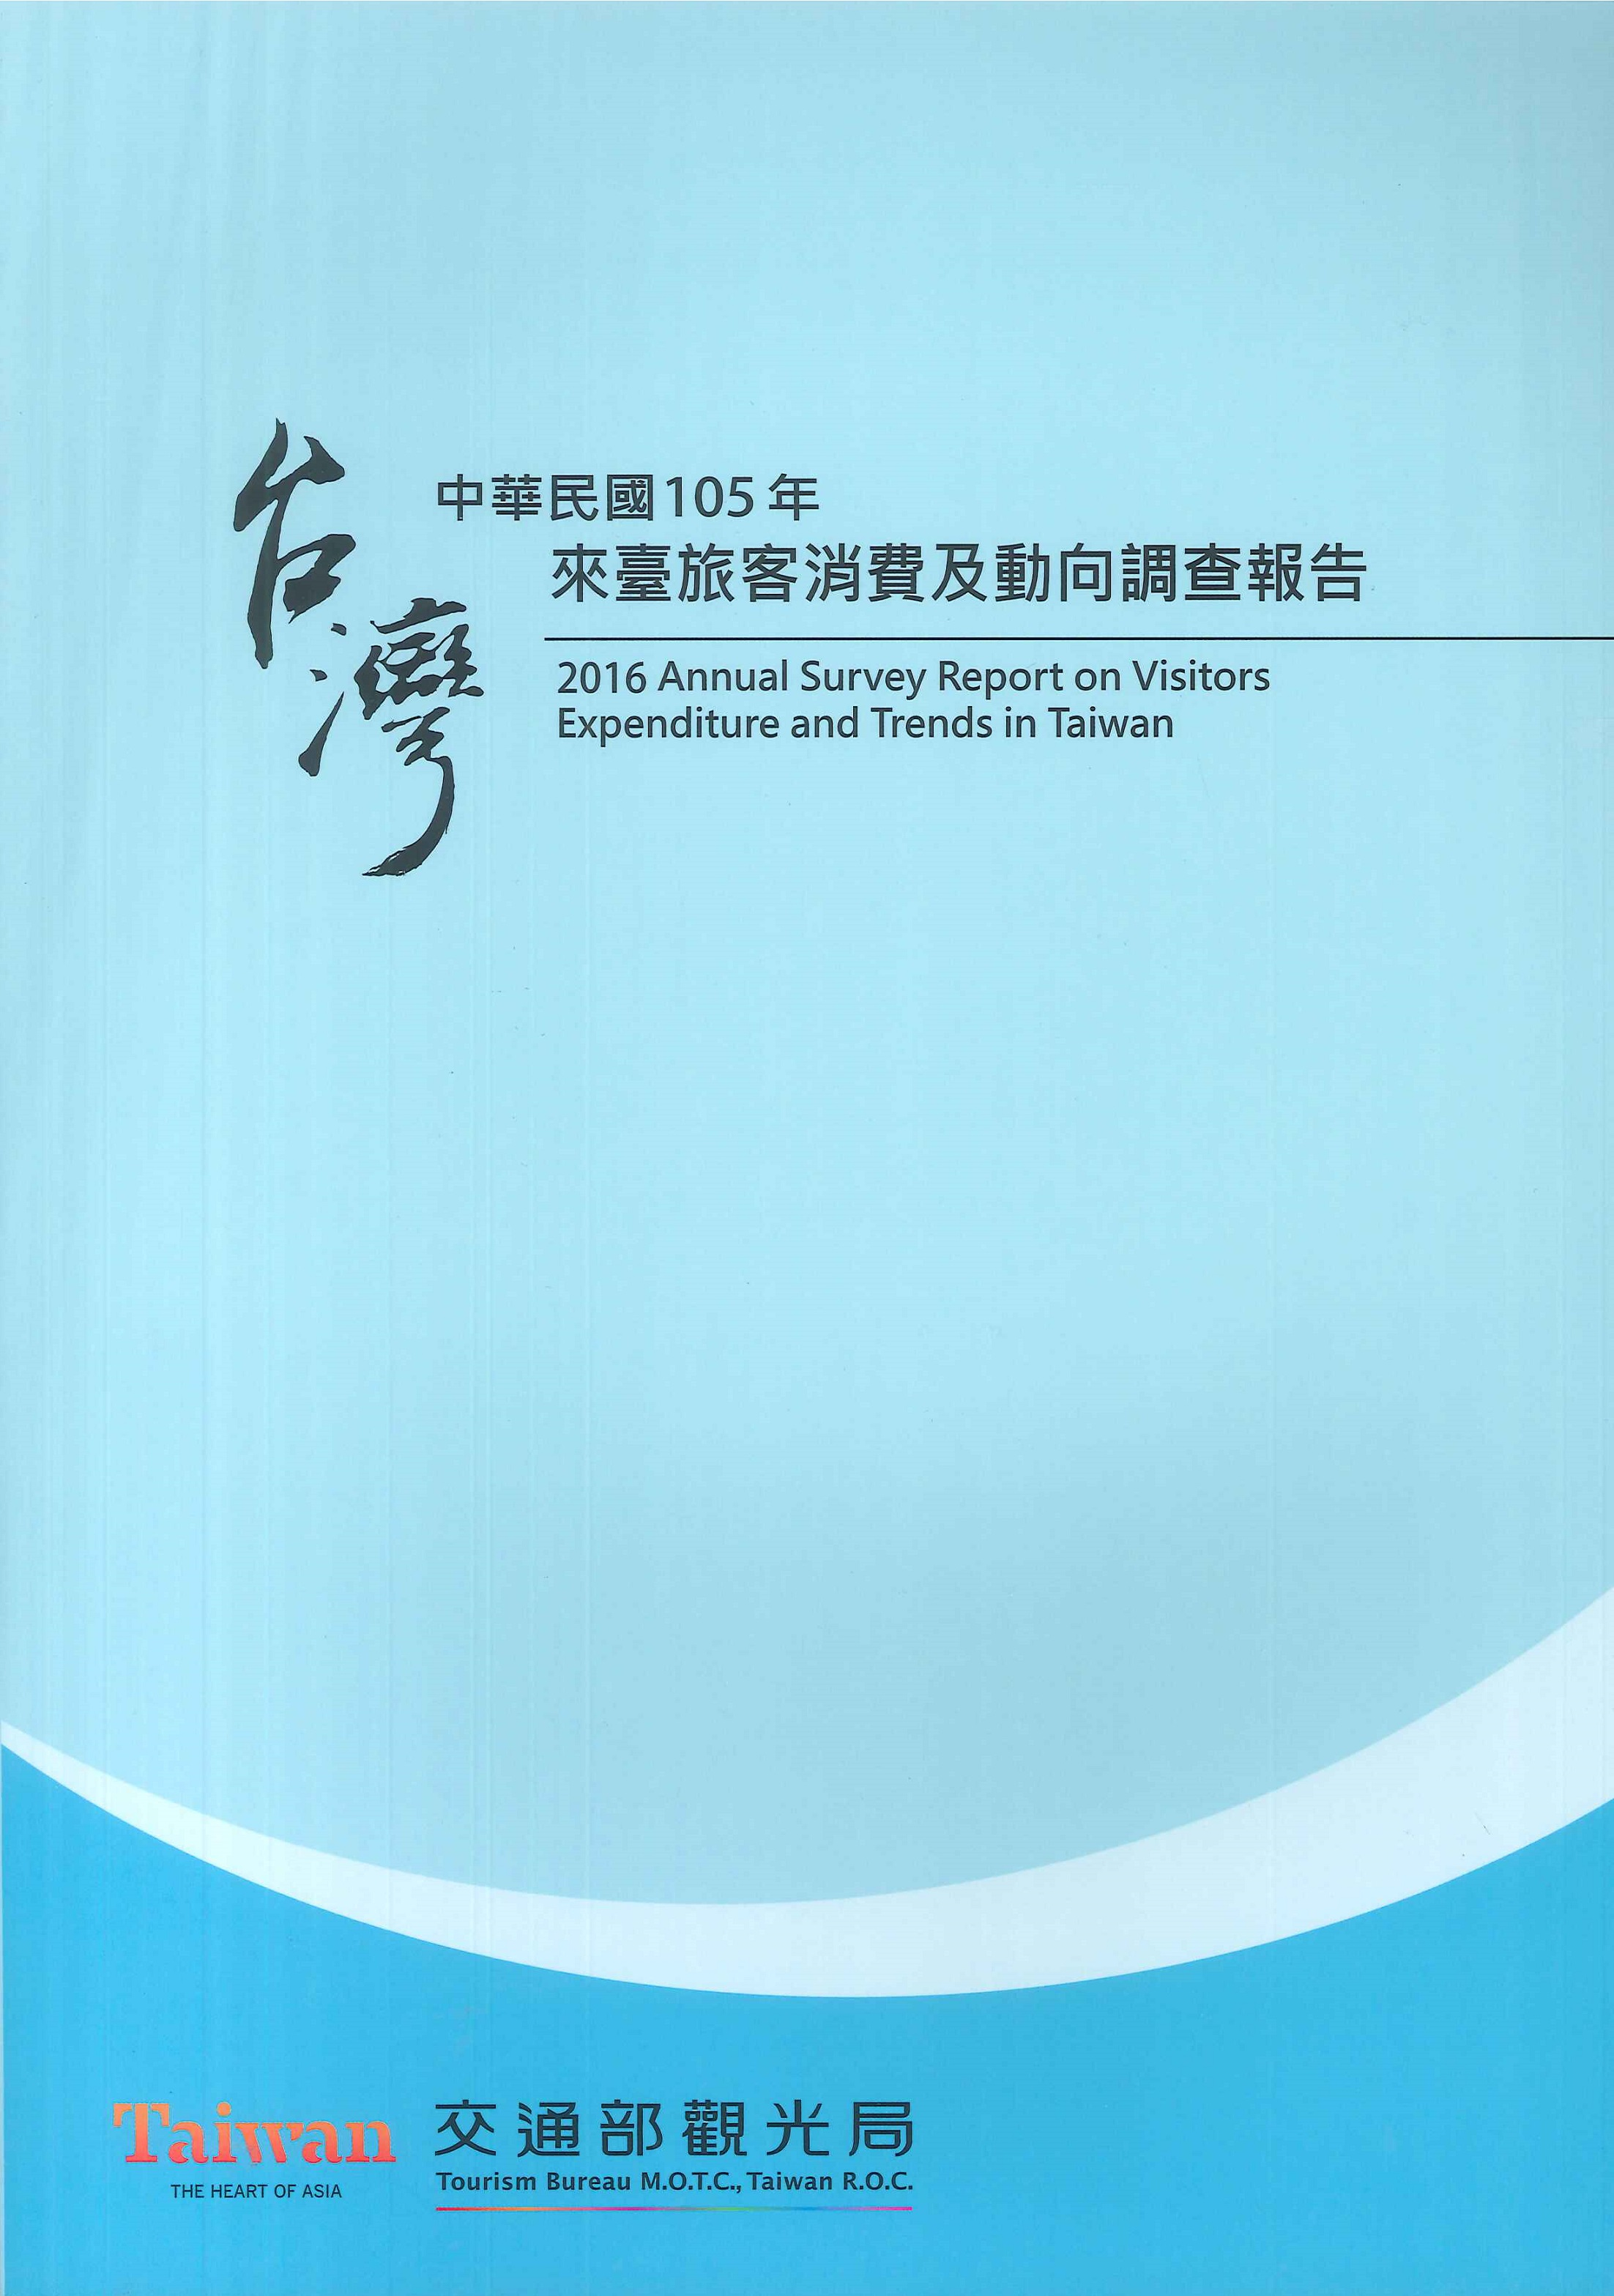 來臺旅客消費及動向調查報告=Annual survey report on visitors expenditure and trends in Taiwan